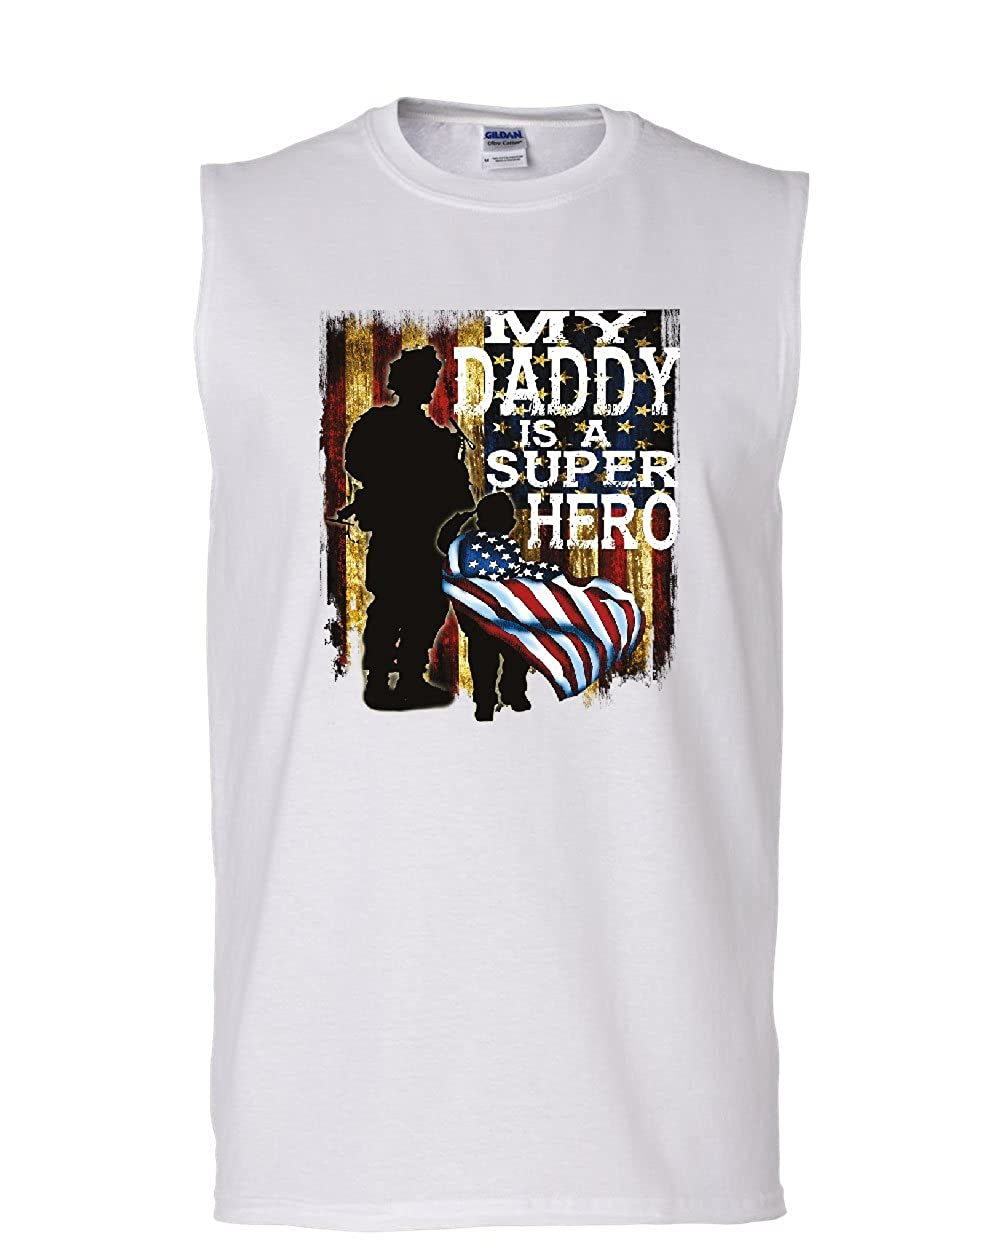 Tee Hunt My Daddy is a Super Hero Muscle Shirt Fathers Day Military Army Navy Sleeveless